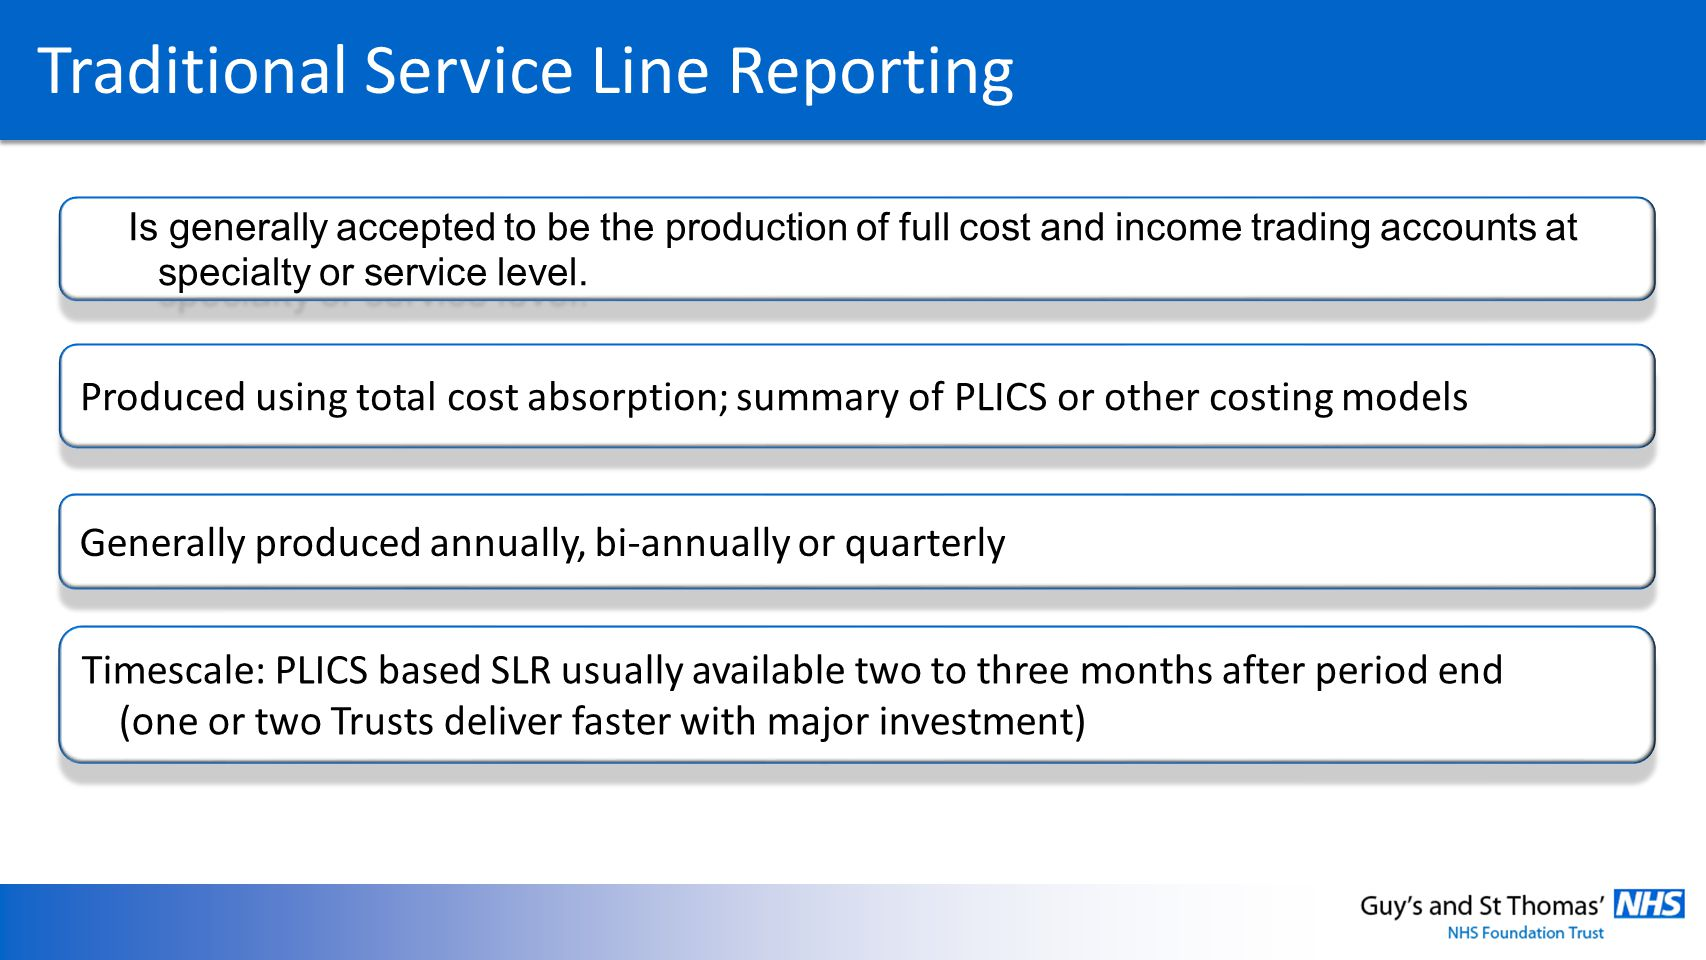 Traditional Service Line Reporting Produced using total cost absorption; summary of PLICS or other costing models Generally produced annually, bi-annually or quarterly Timescale: PLICS based SLR usually available two to three months after period end (one or two Trusts deliver faster with major investment) Is generally accepted to be the production of full cost and income trading accounts at specialty or service level.